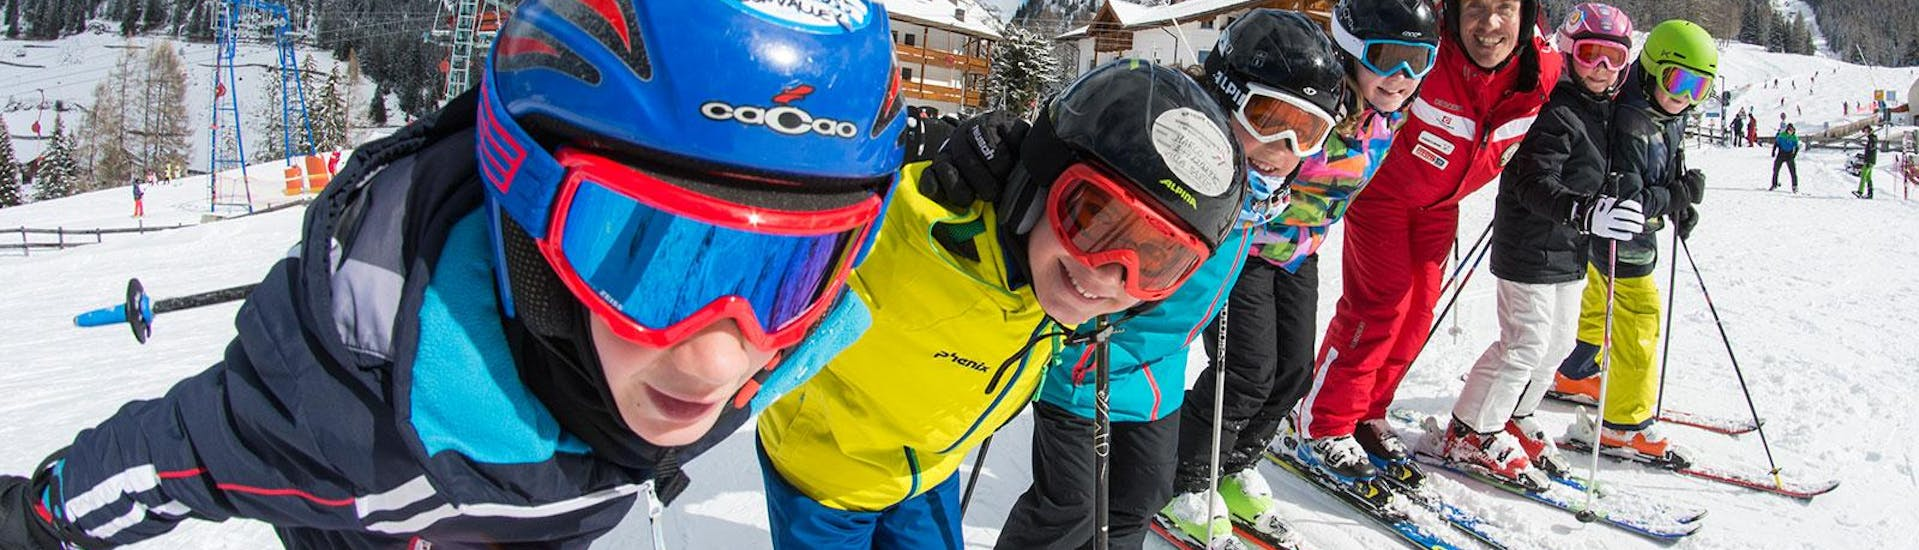 Kids Ski Lessons for Beginners (4-12 y.) - Full-Day with Ski and Snowboard School Selva Val Gardena - Hero image